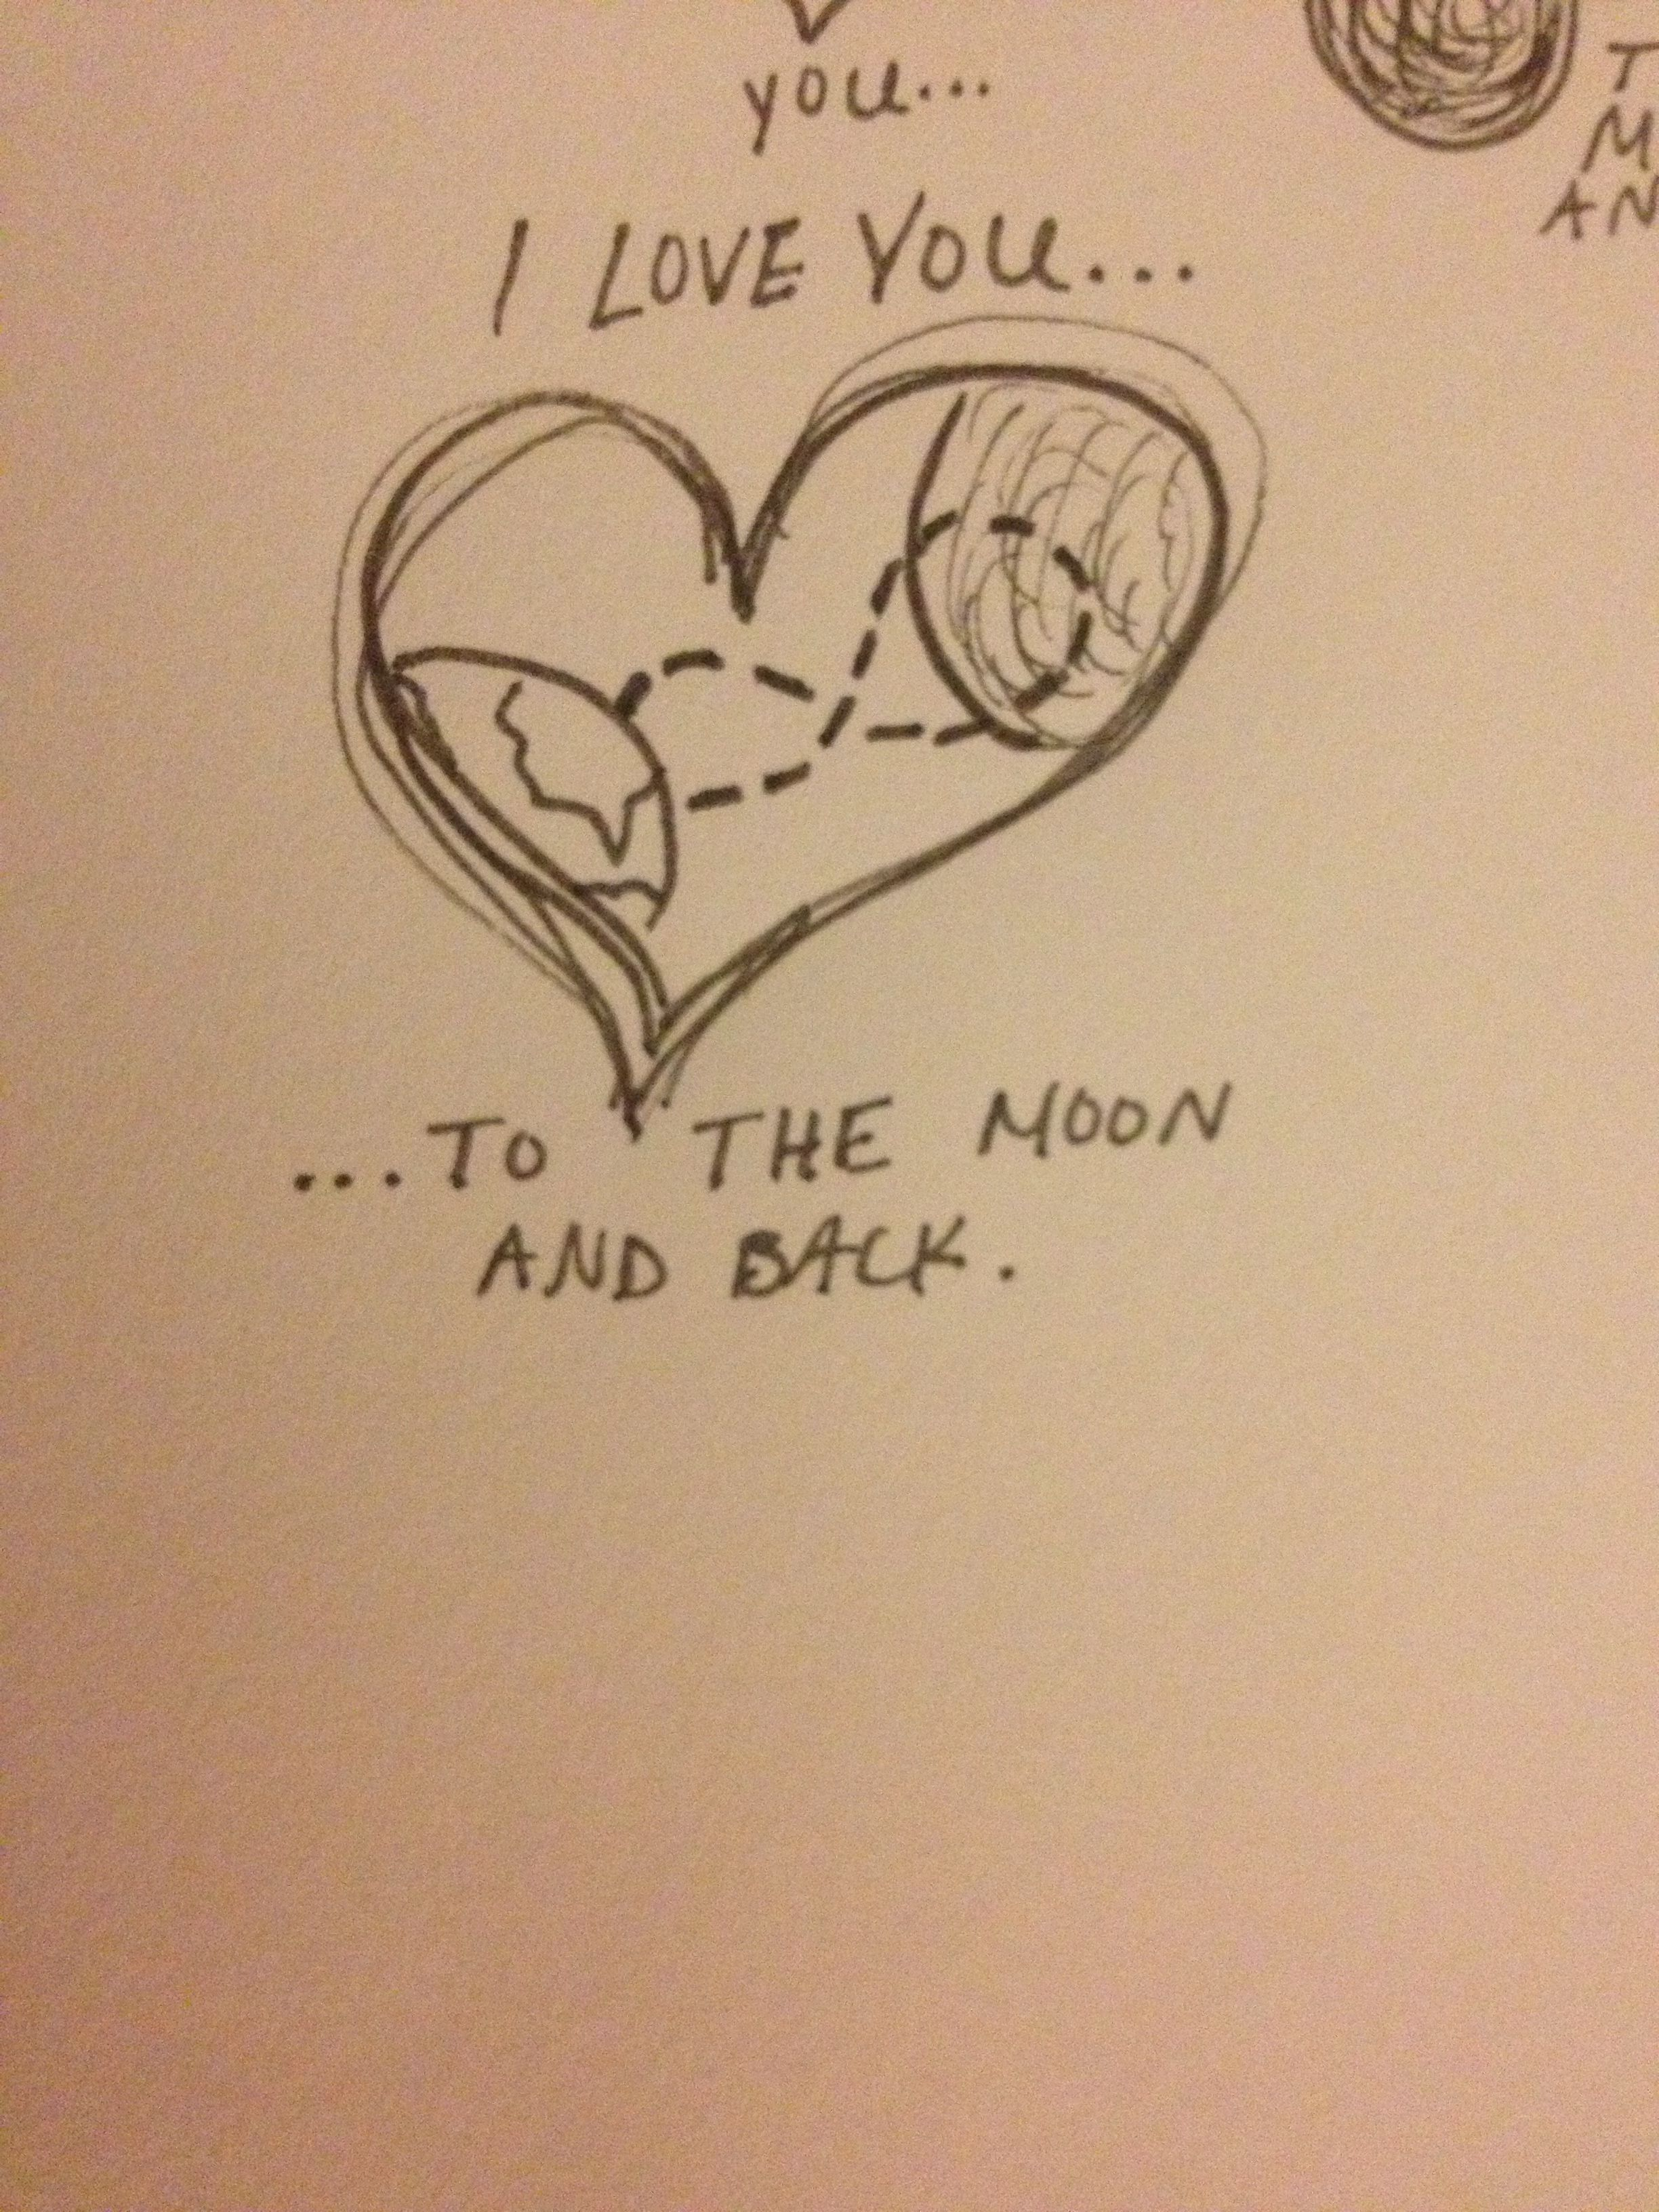 Tattoos Of Love You To The Moon And BackI Love You To The Moon And Back Tattoo Ideas